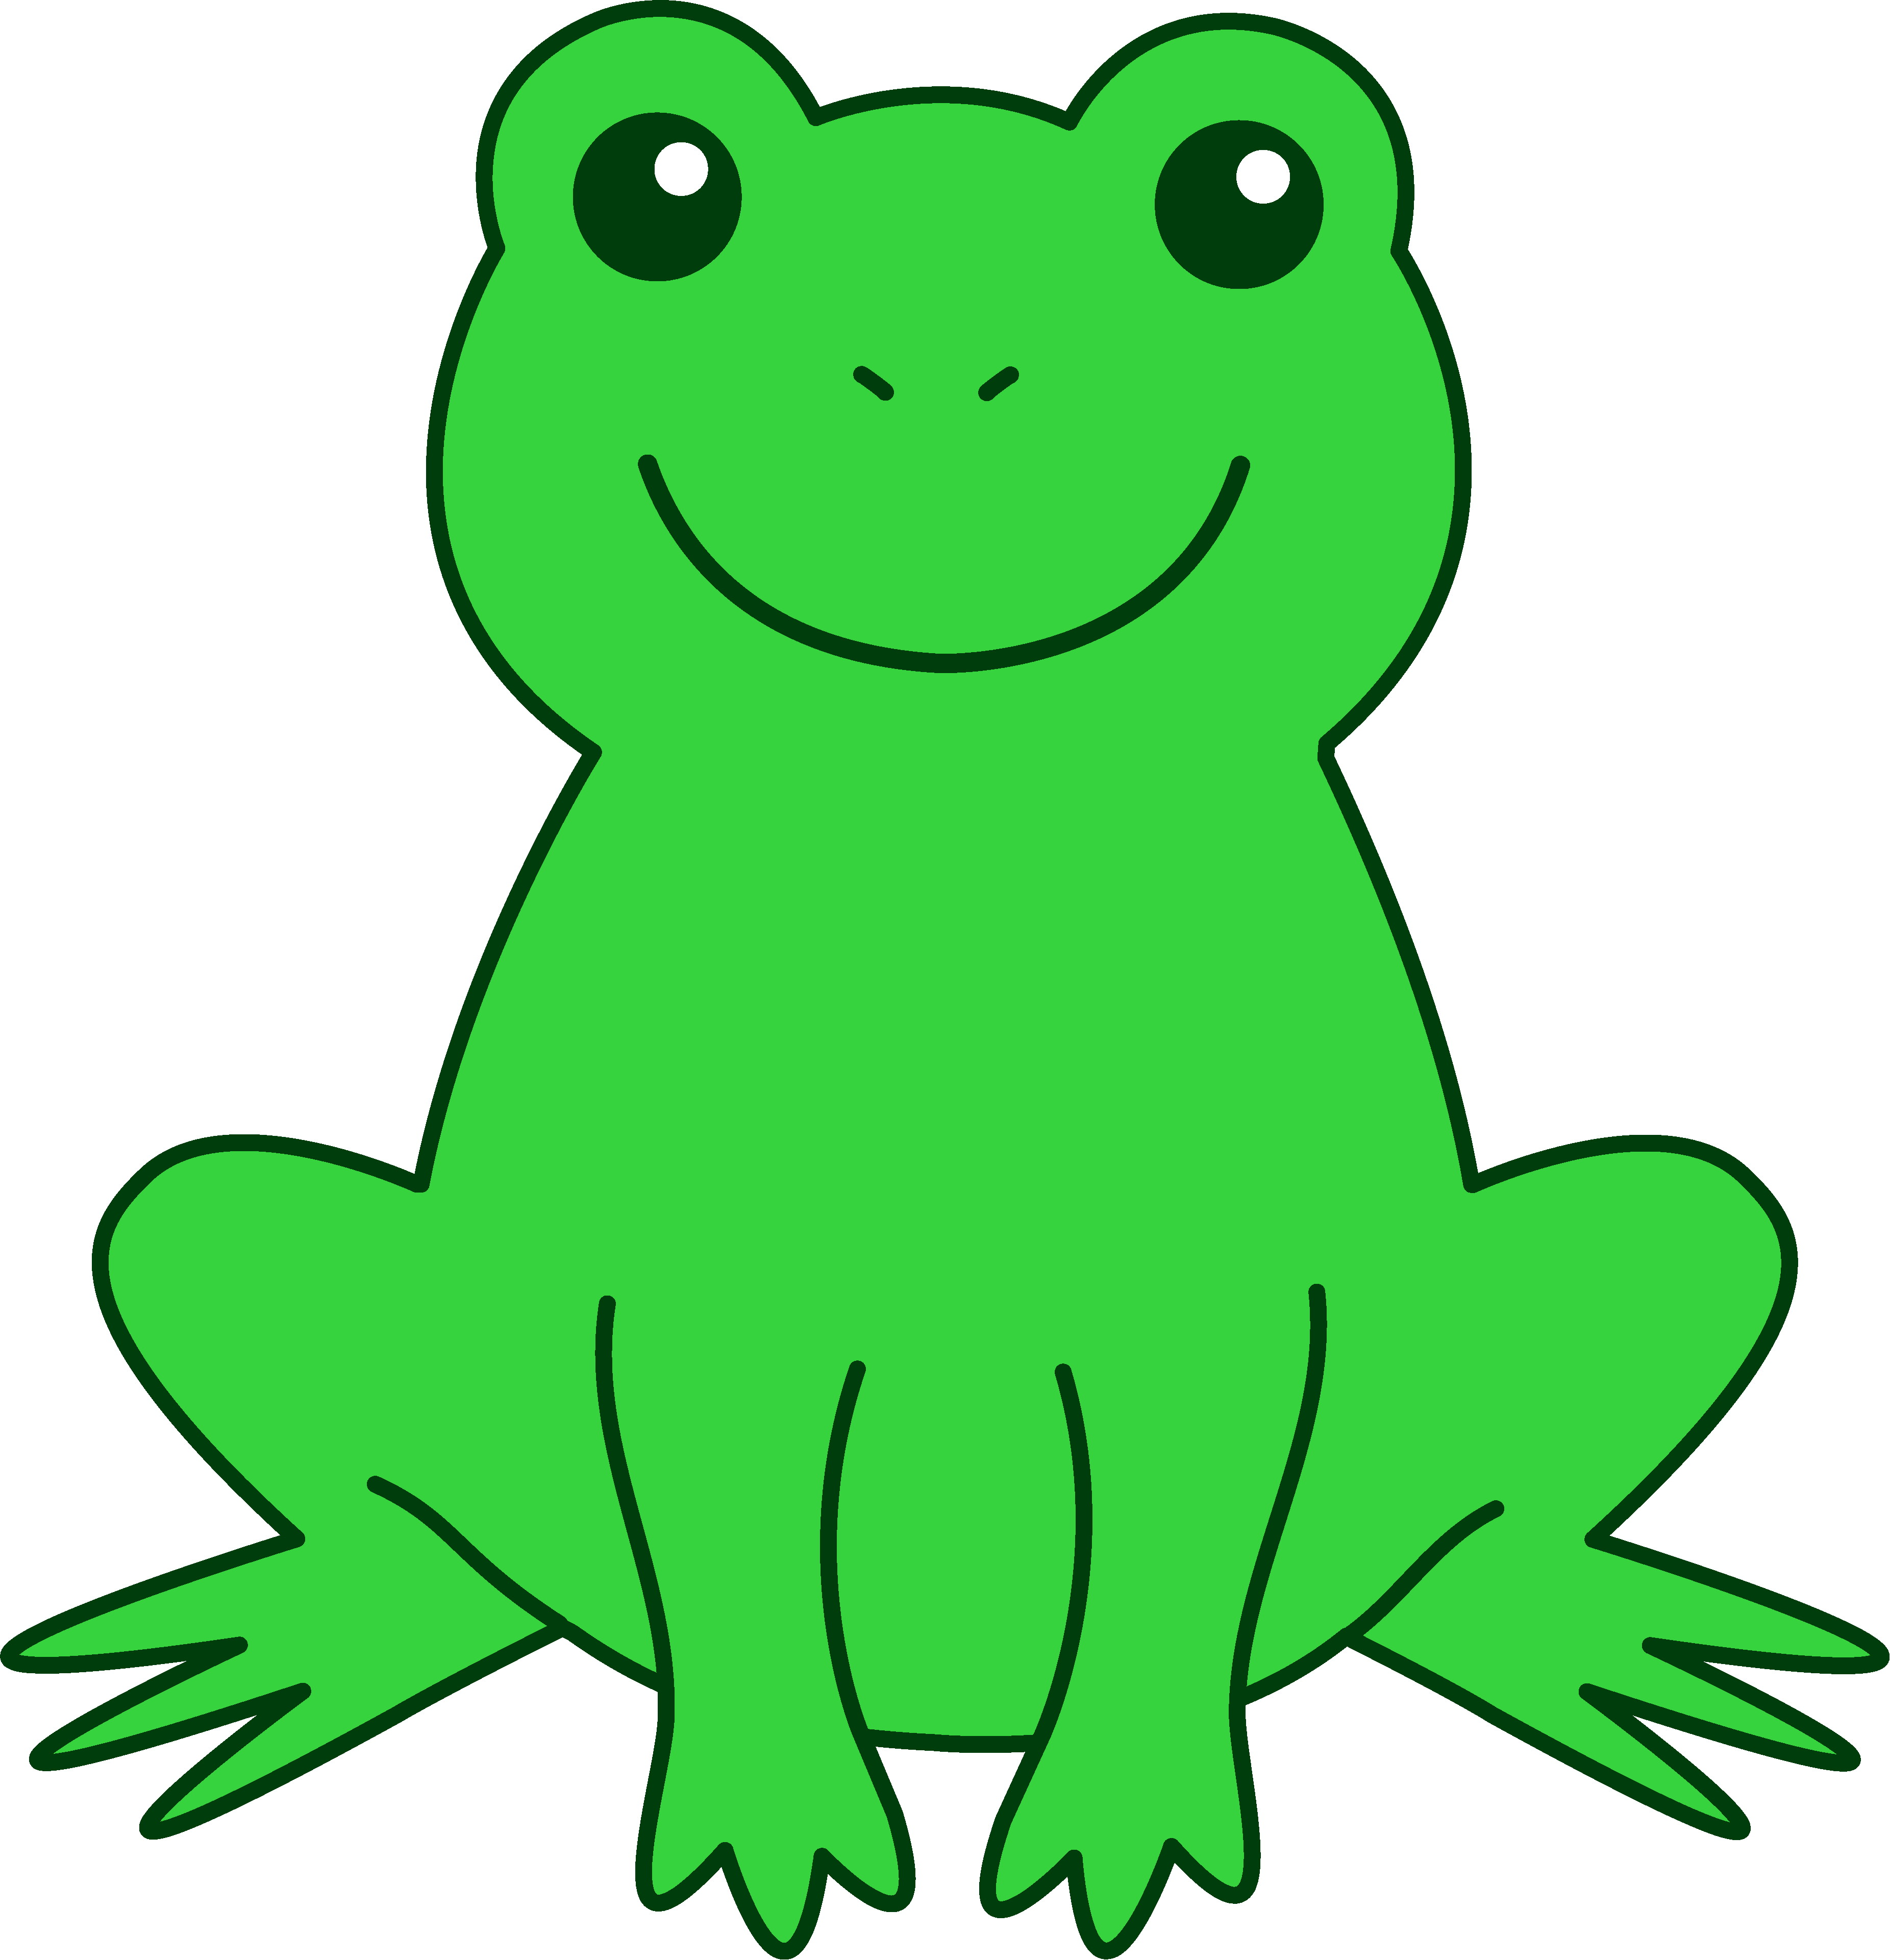 frog clip art for teachers free clipart images victorian skeptics rh vicskeptics wordpress com